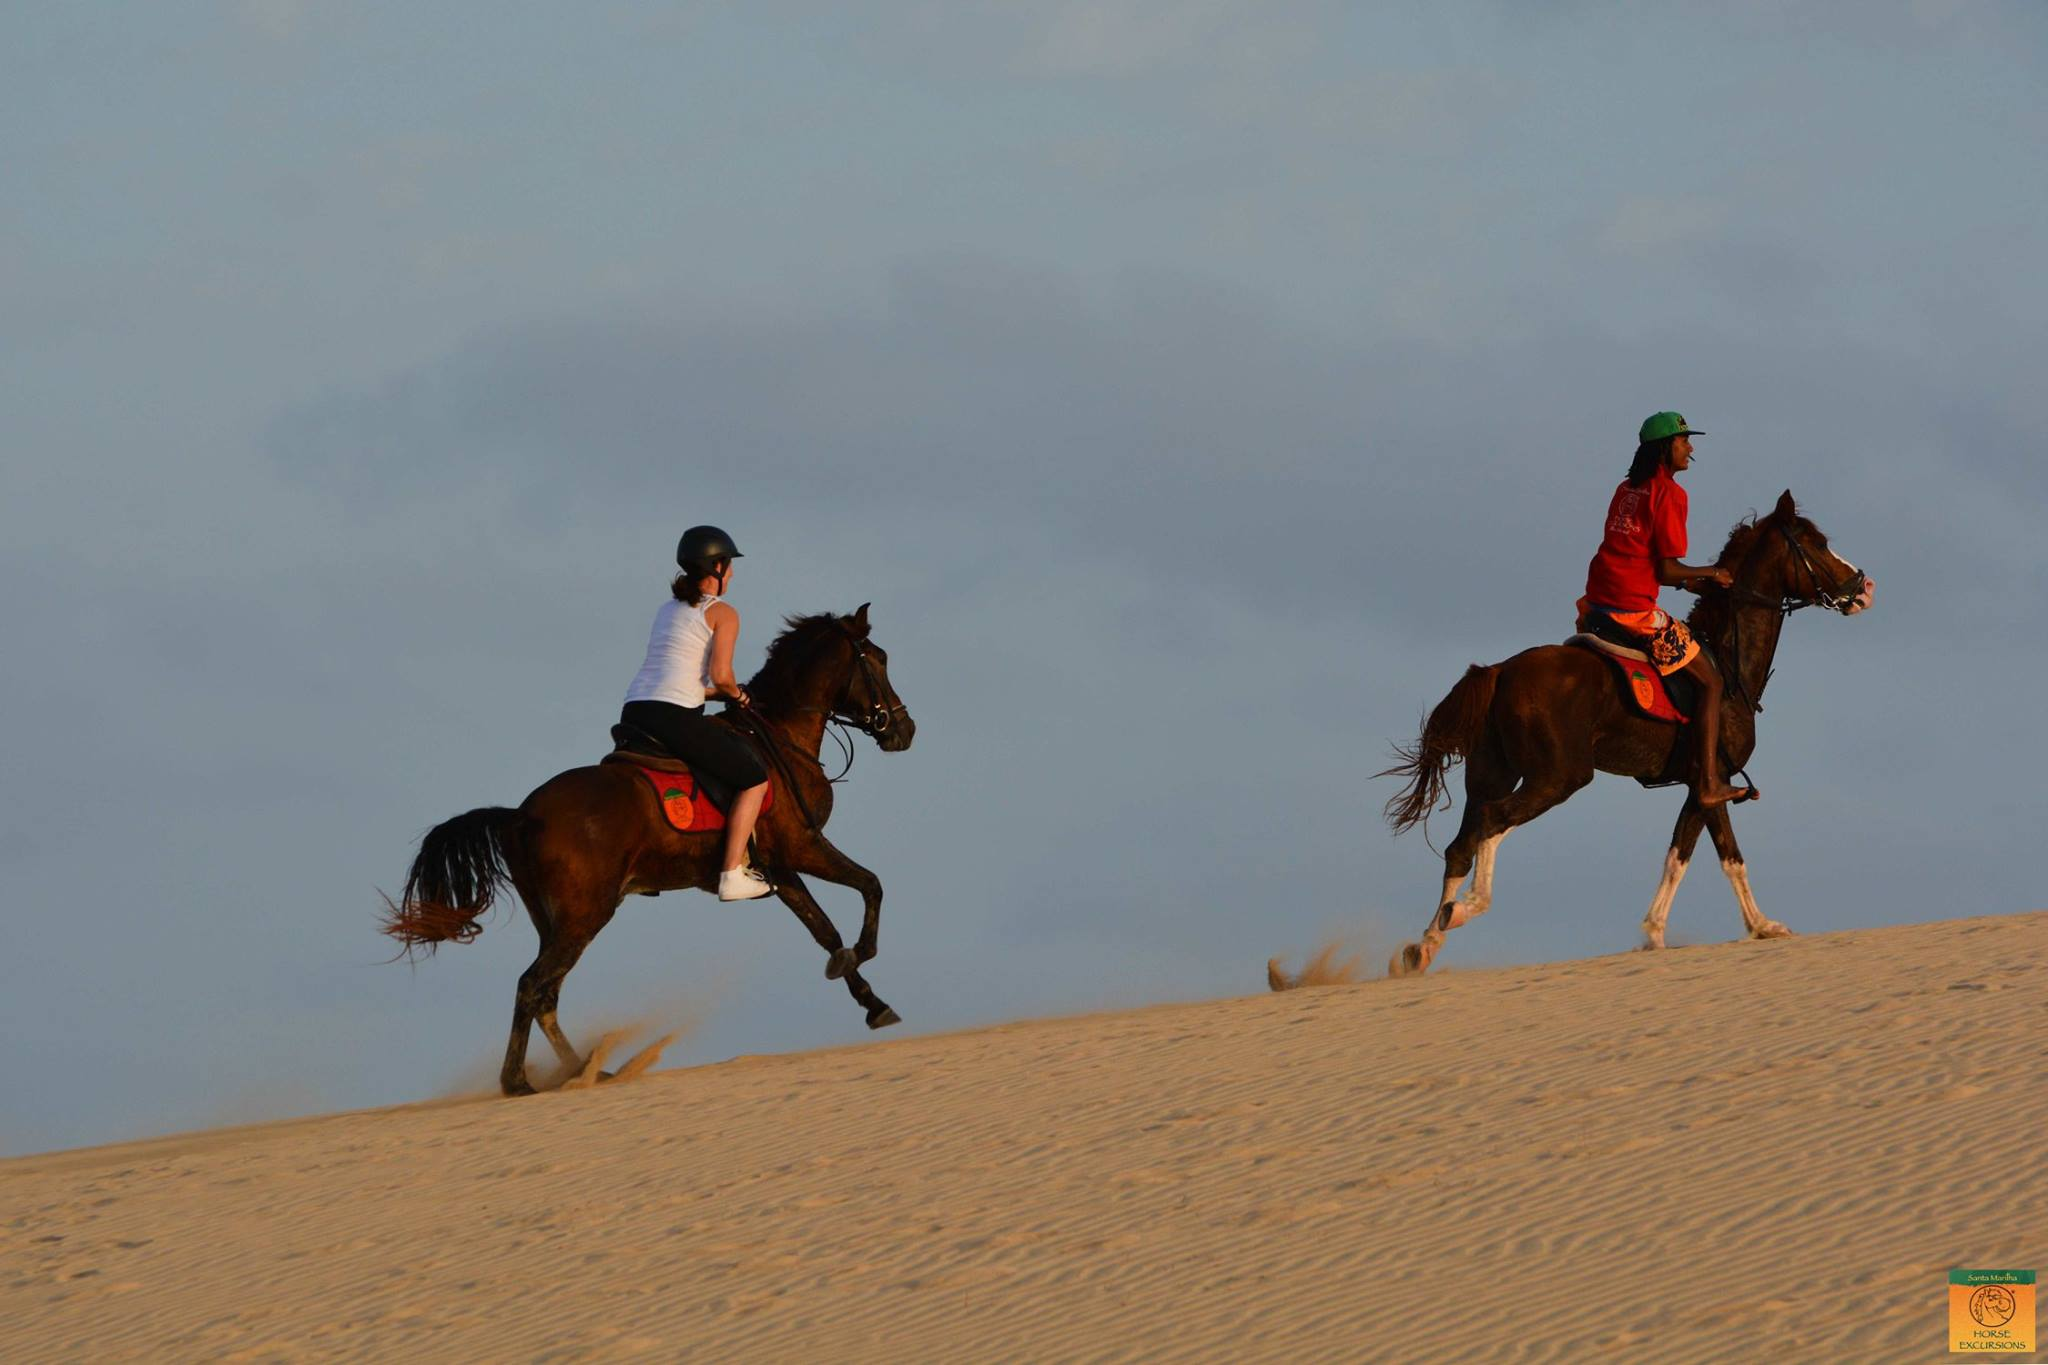 Riding at the Sand Dunes